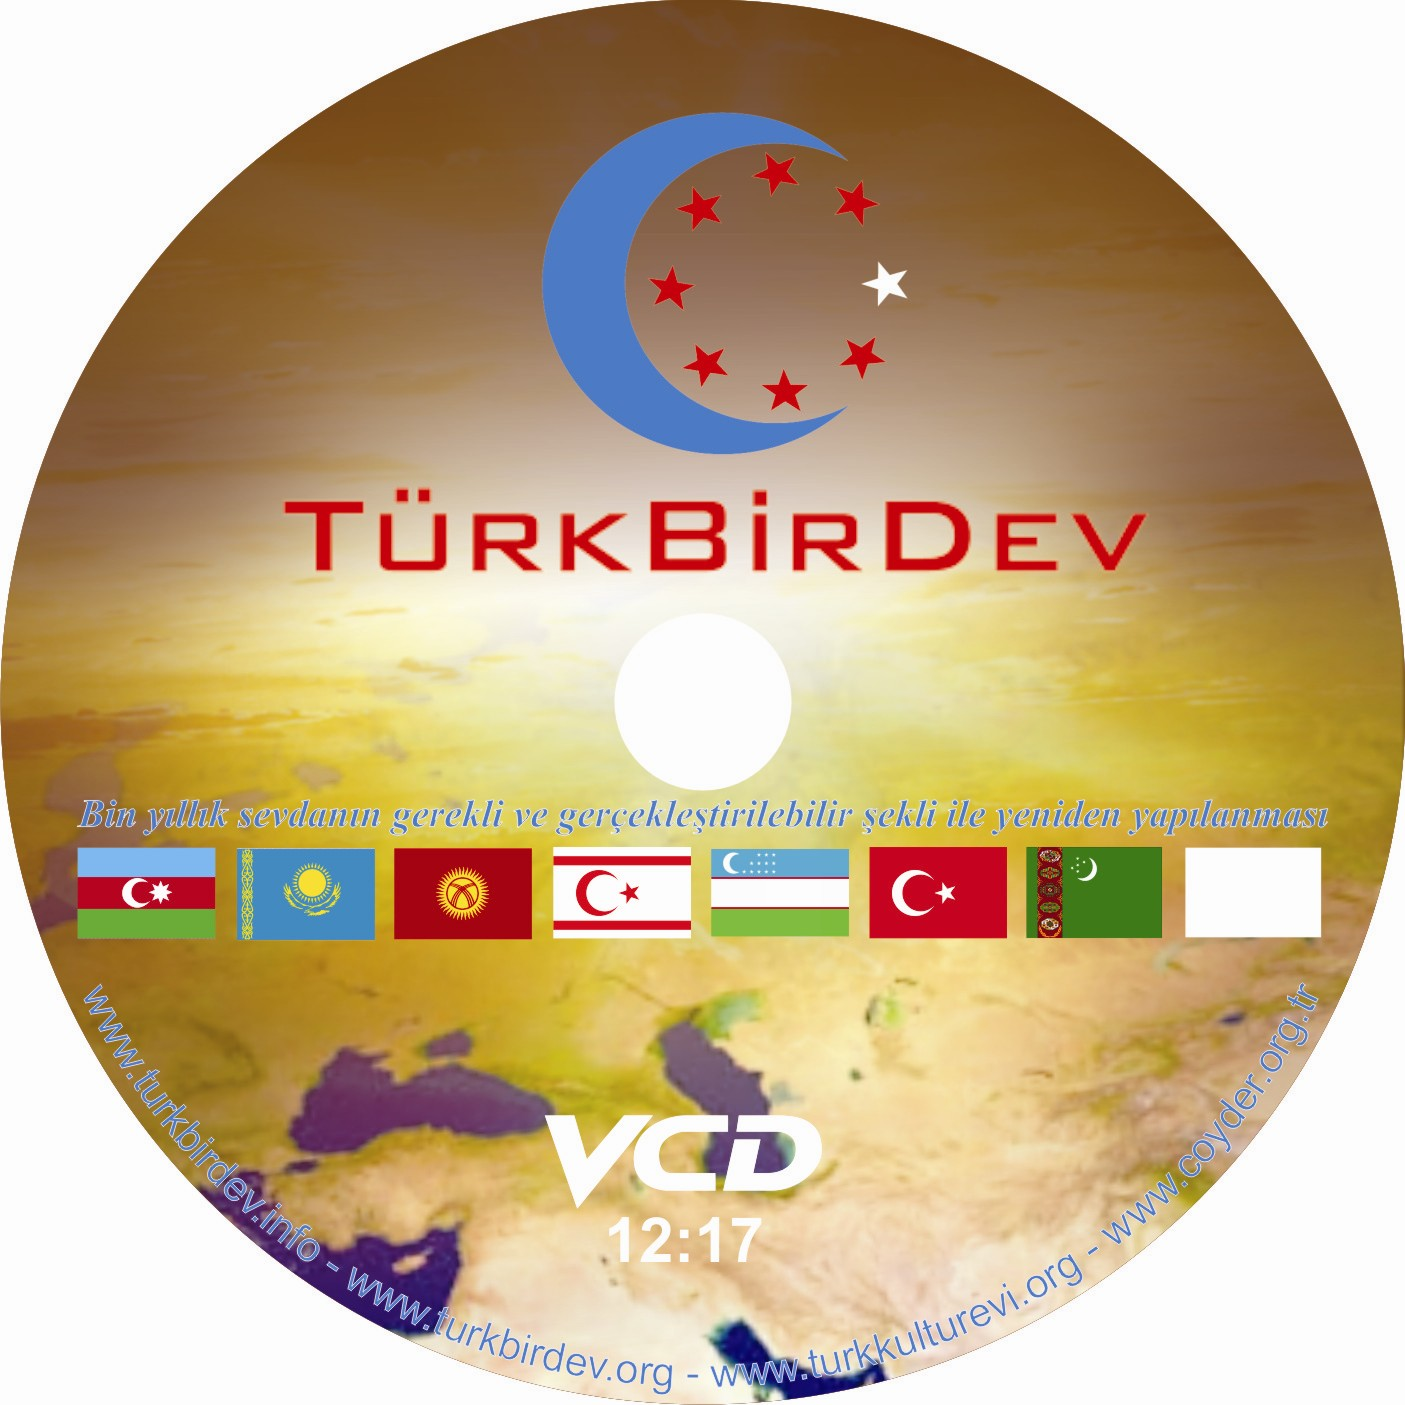 TurkBirDev VCD video Turk Birligi